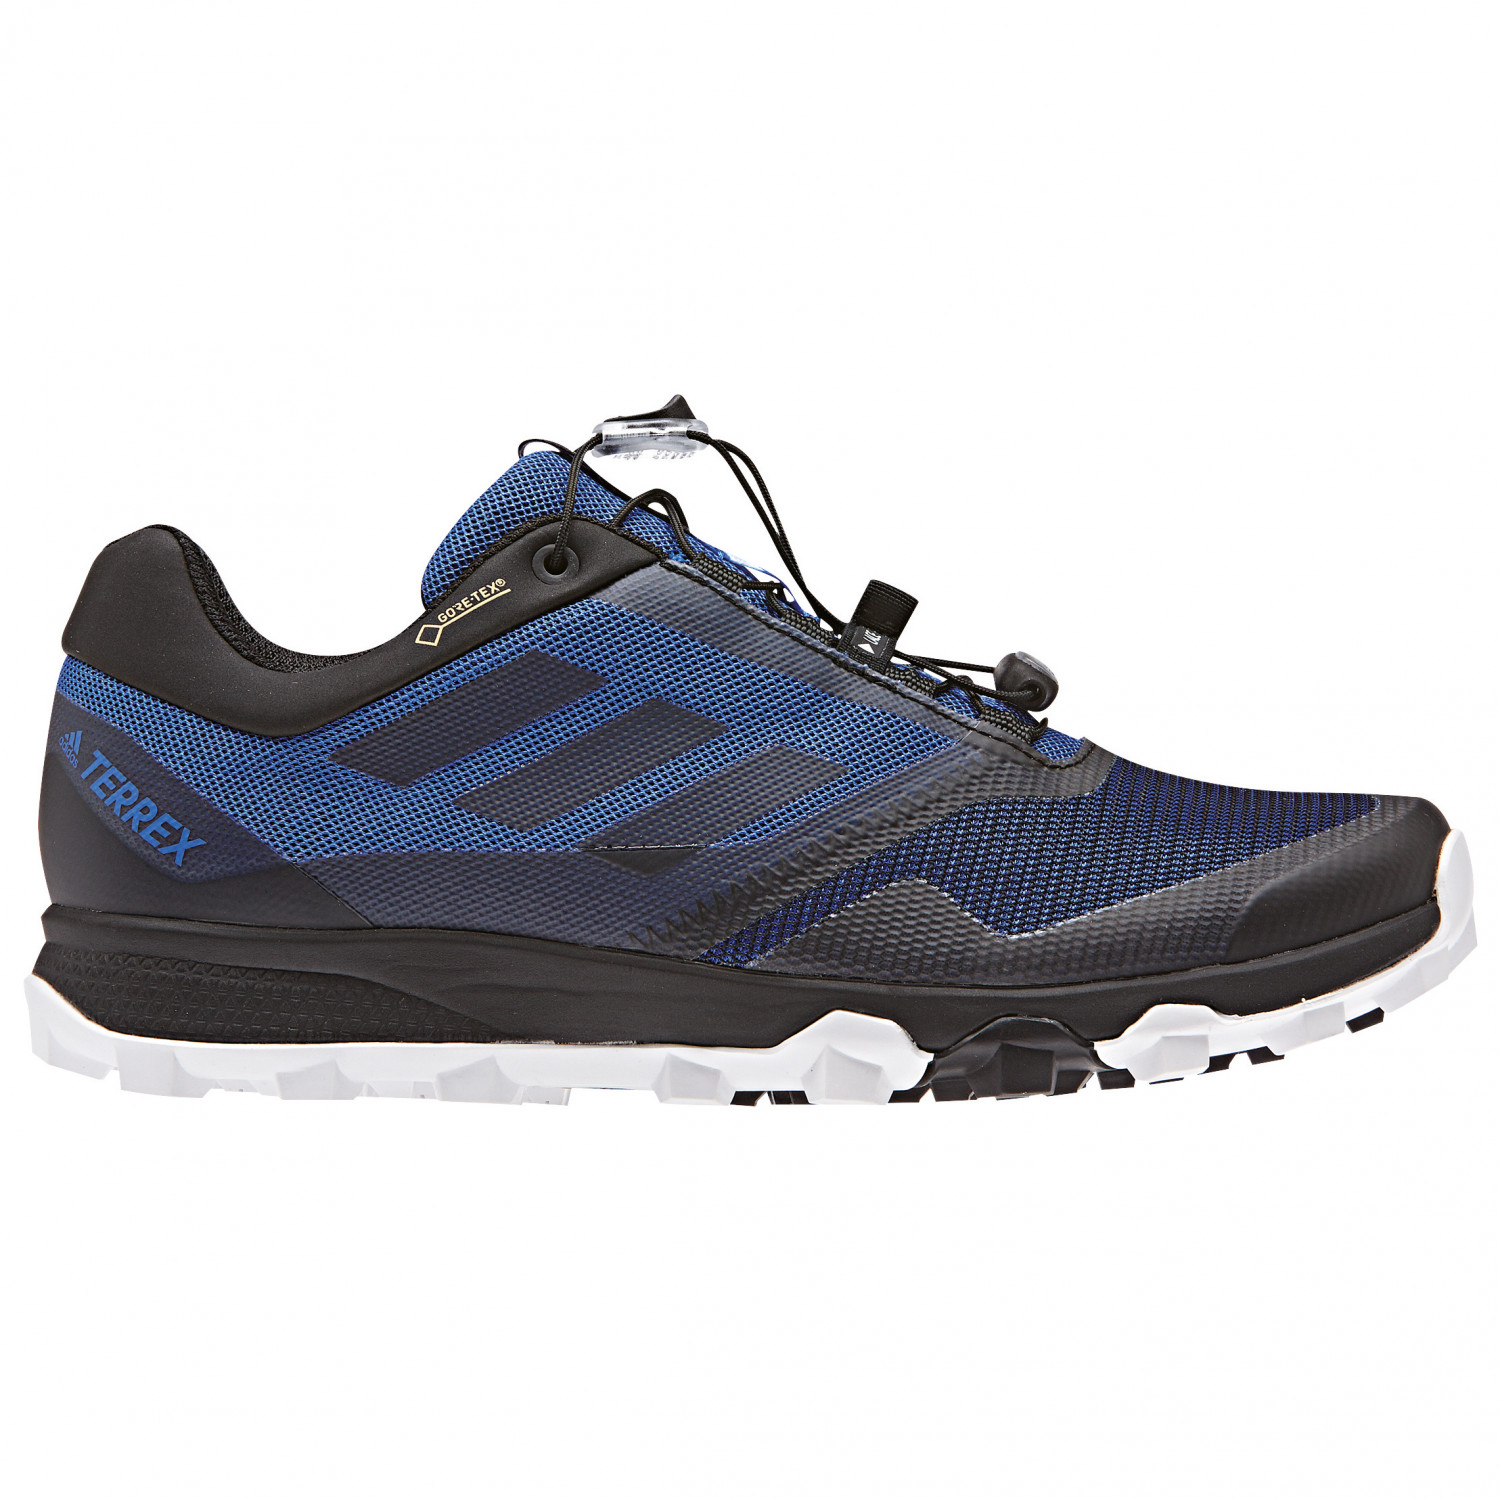 adidas - Women's Terrex Trailmaker GTX - Trail running shoes - Core Black /  Core Black / Core Black | 4,5 (UK)